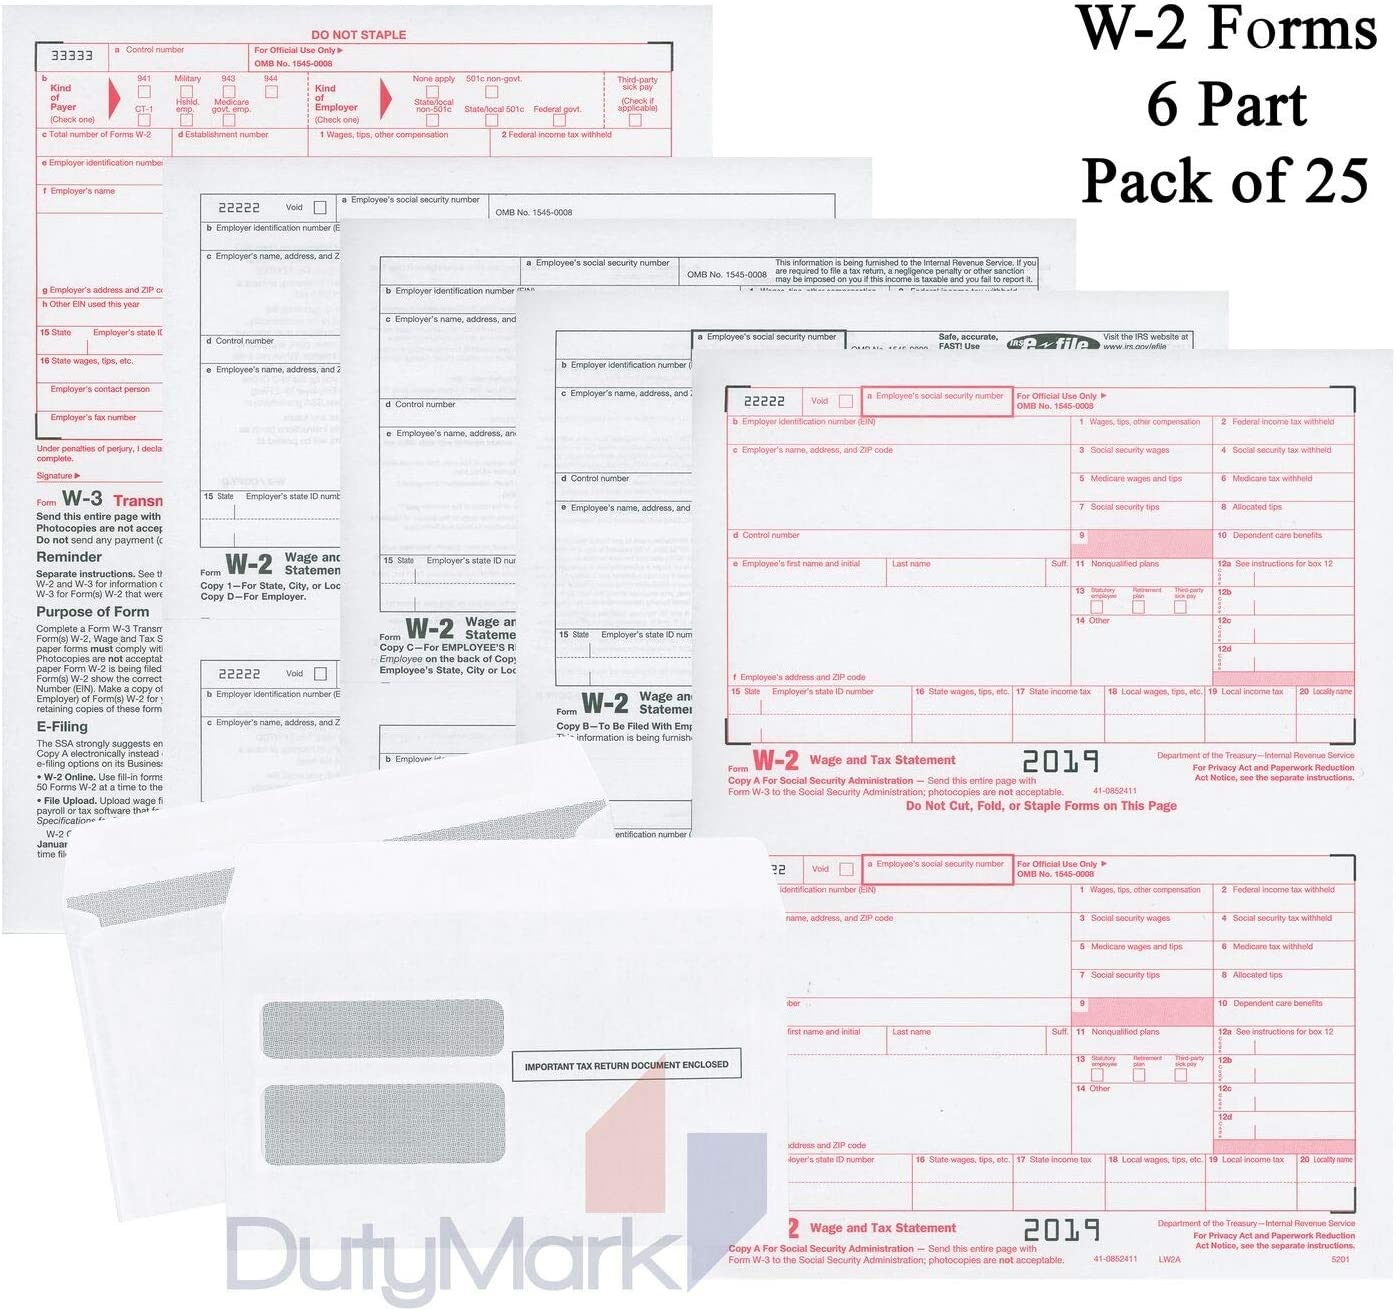 (2019) W-2 Tax Forms (6-Part) Kit for 25 Employees with Self-Seal Envelopes and W-3 Transmittal for QuickBooks and Accounting Software, 2019 W2